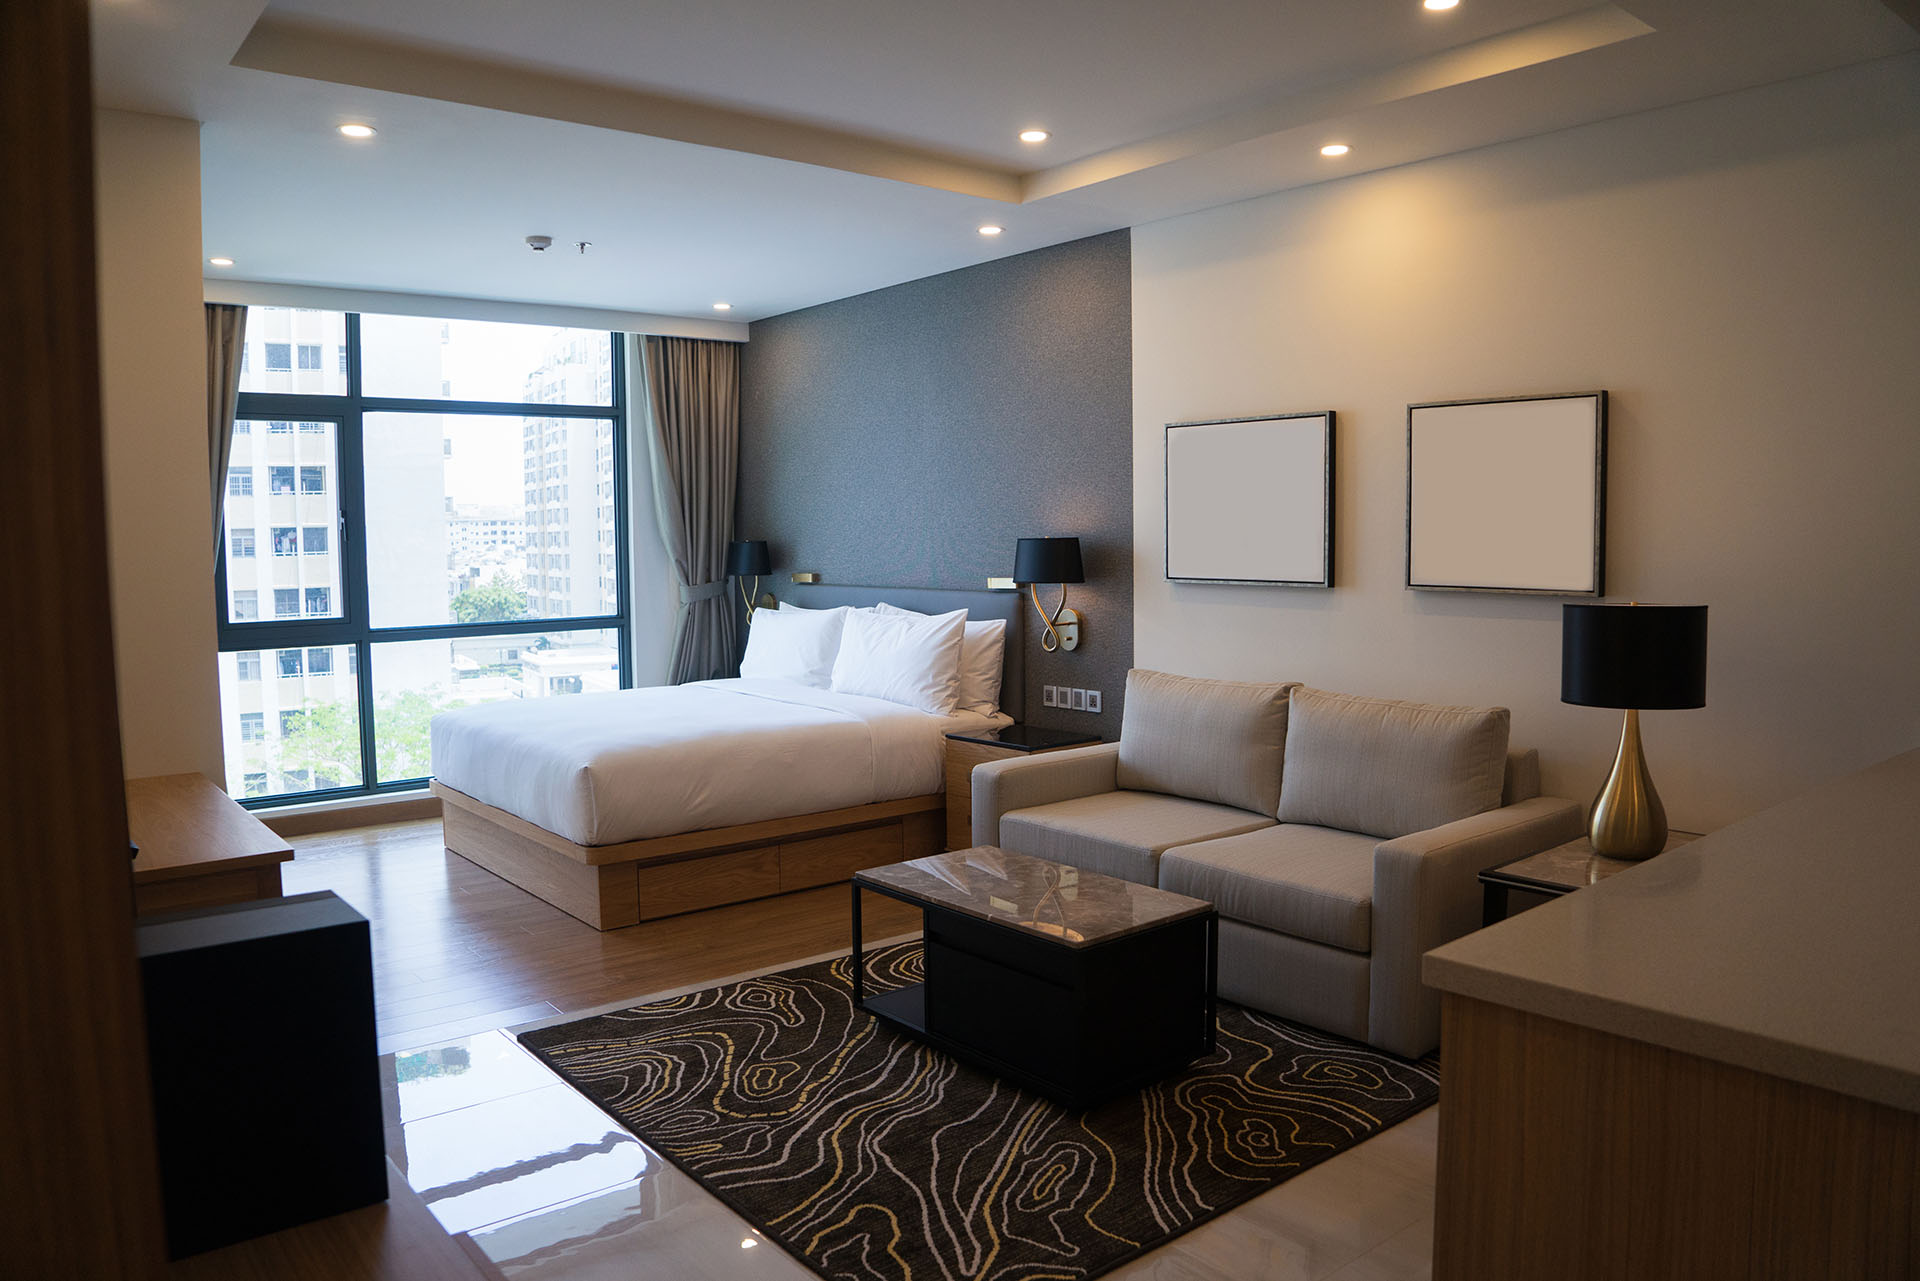 Cozy studio apartment design with bedroom and living space. Hotel room panoramic window, double bed, sofa and coffee table. Urban apartment concept